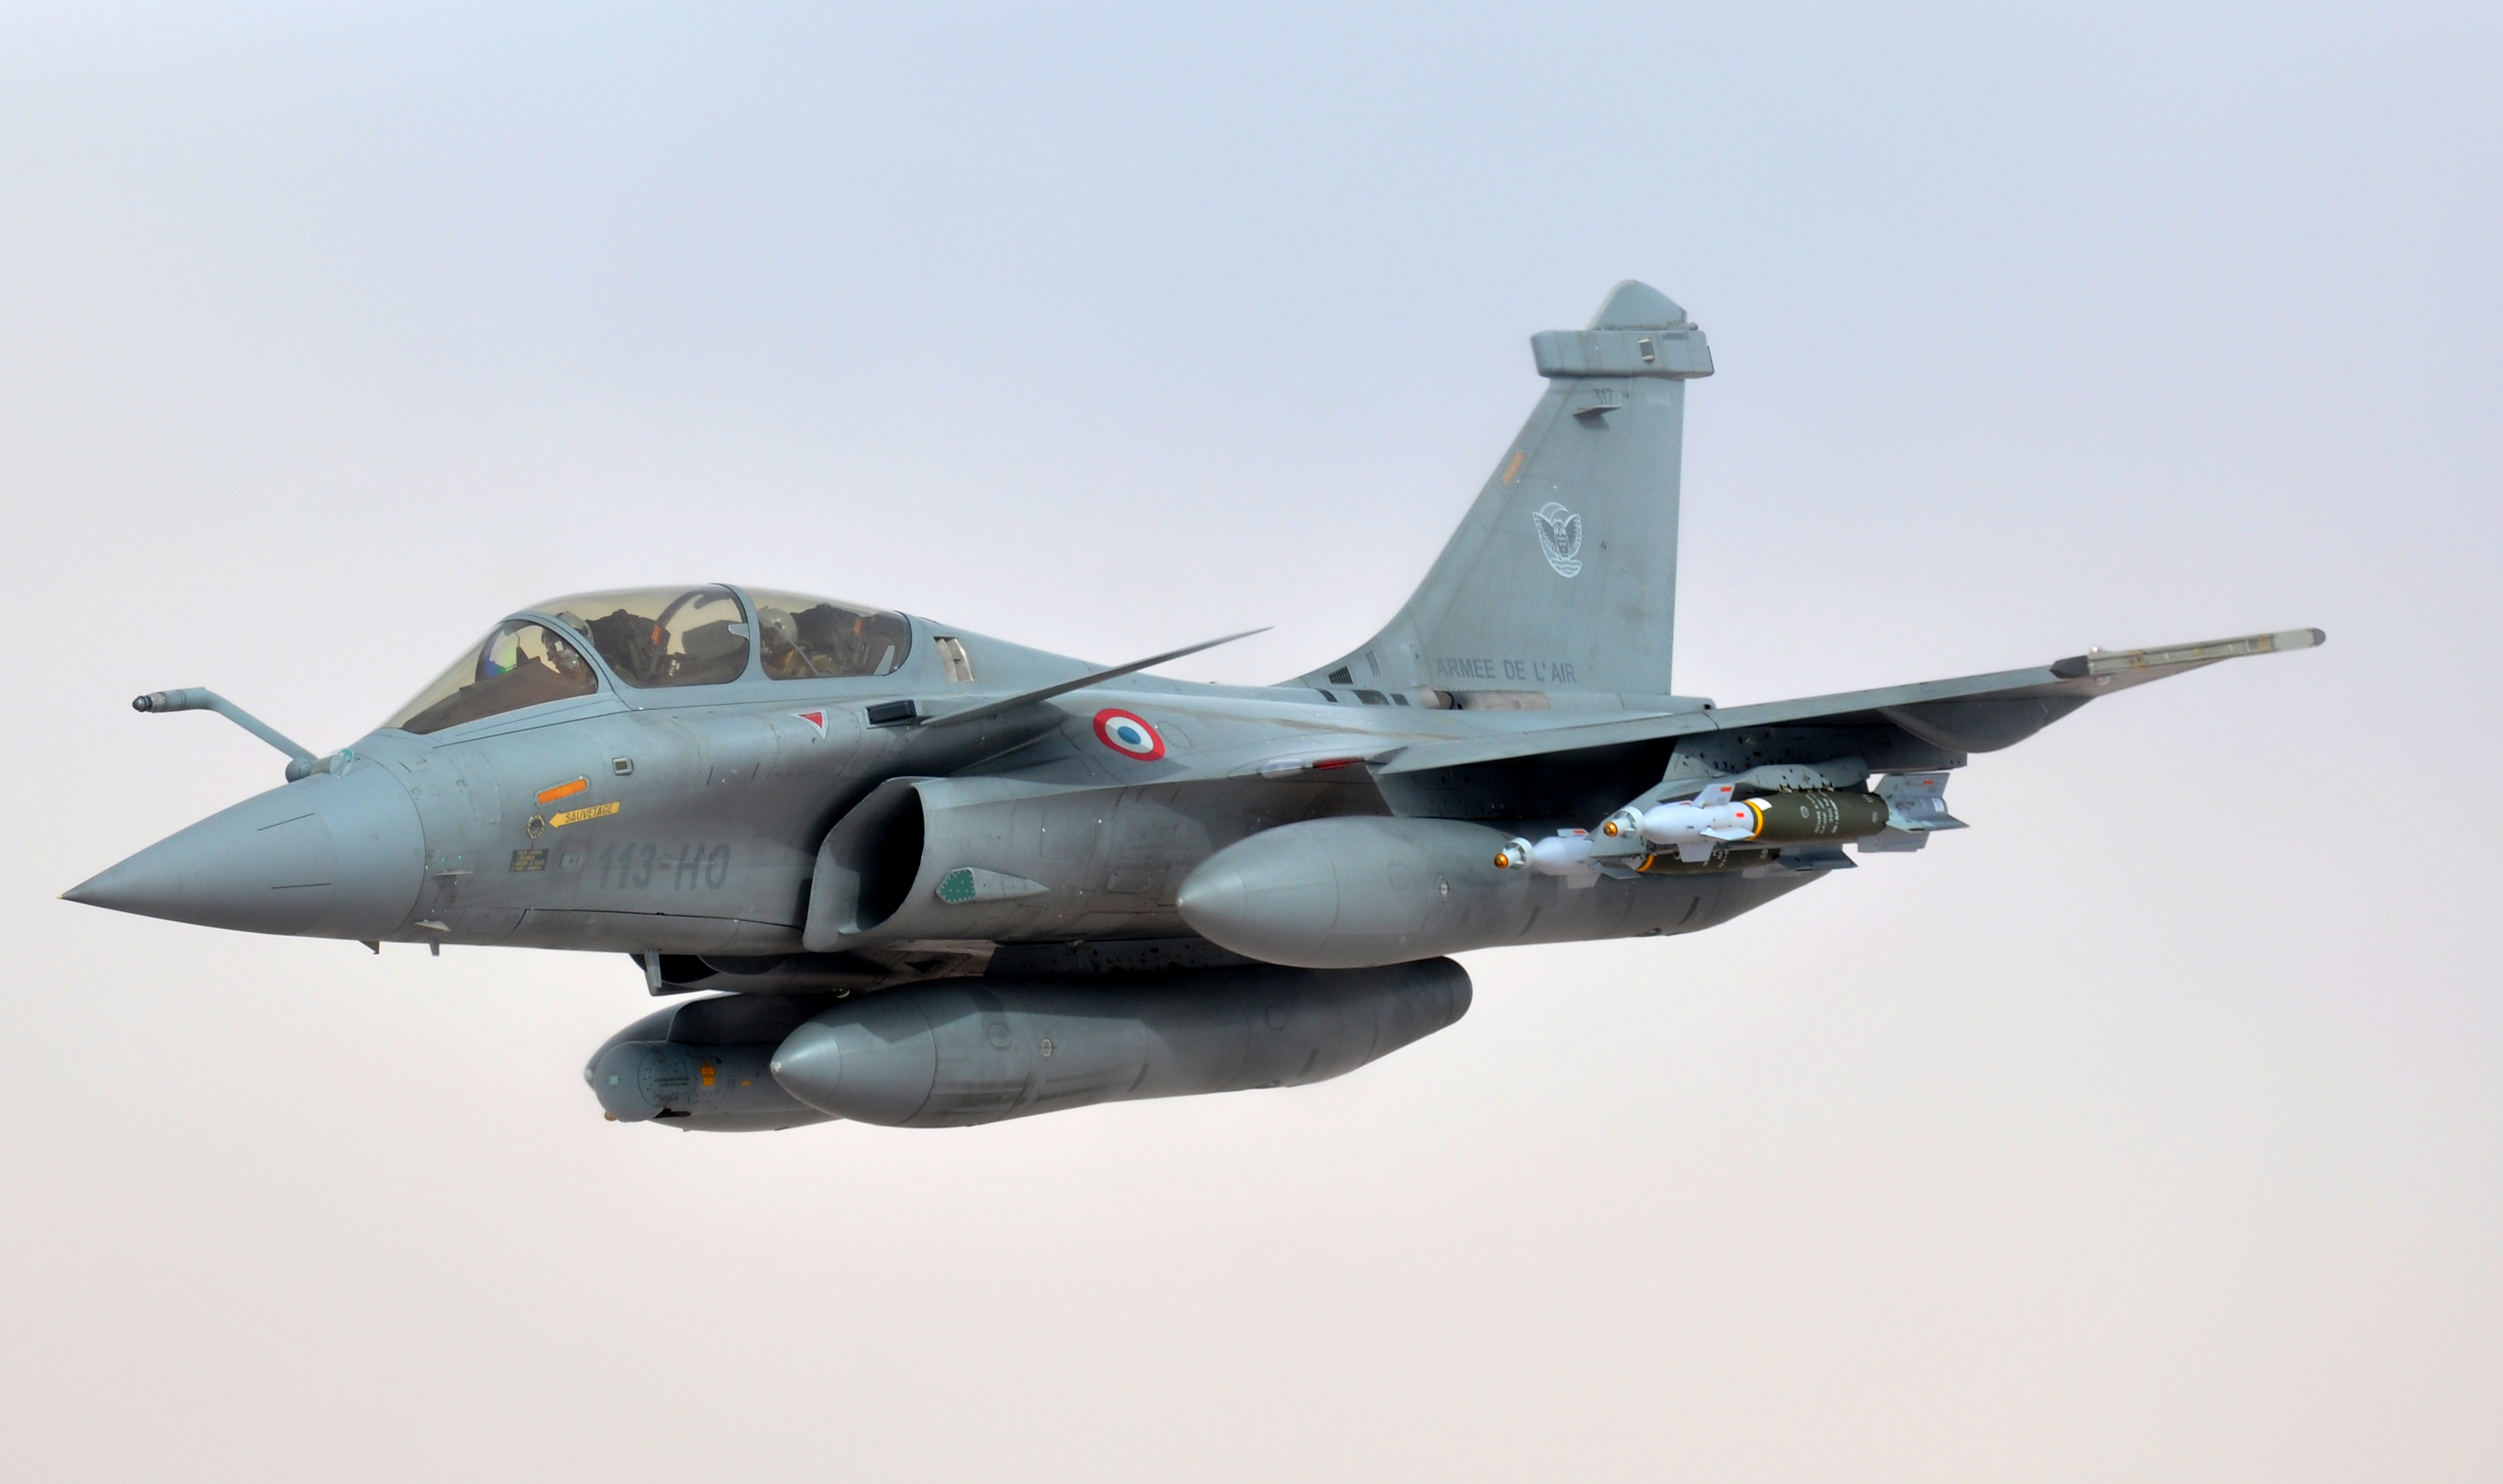 A_French_air_force_Rafale_aircraft_breaks_formation_after_refueling_from_a_U.S._Air_Force_KC-1...jpg